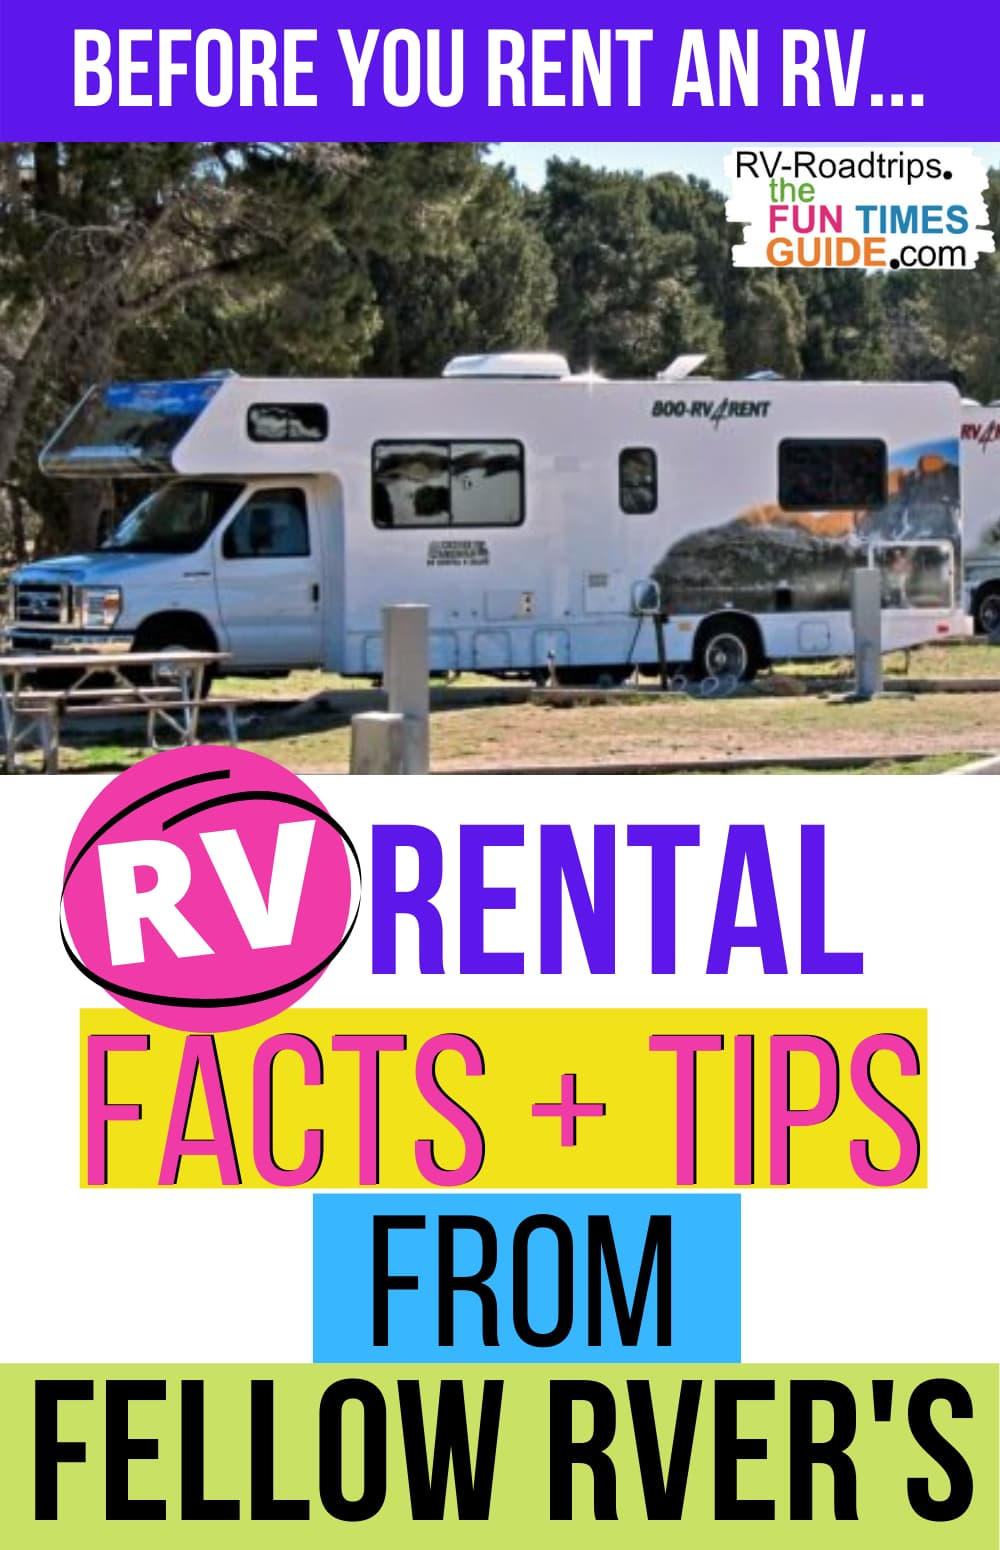 Before You Rent An RV… Here Are The Best Places To Find Rental RVs And RV Rental Insurance